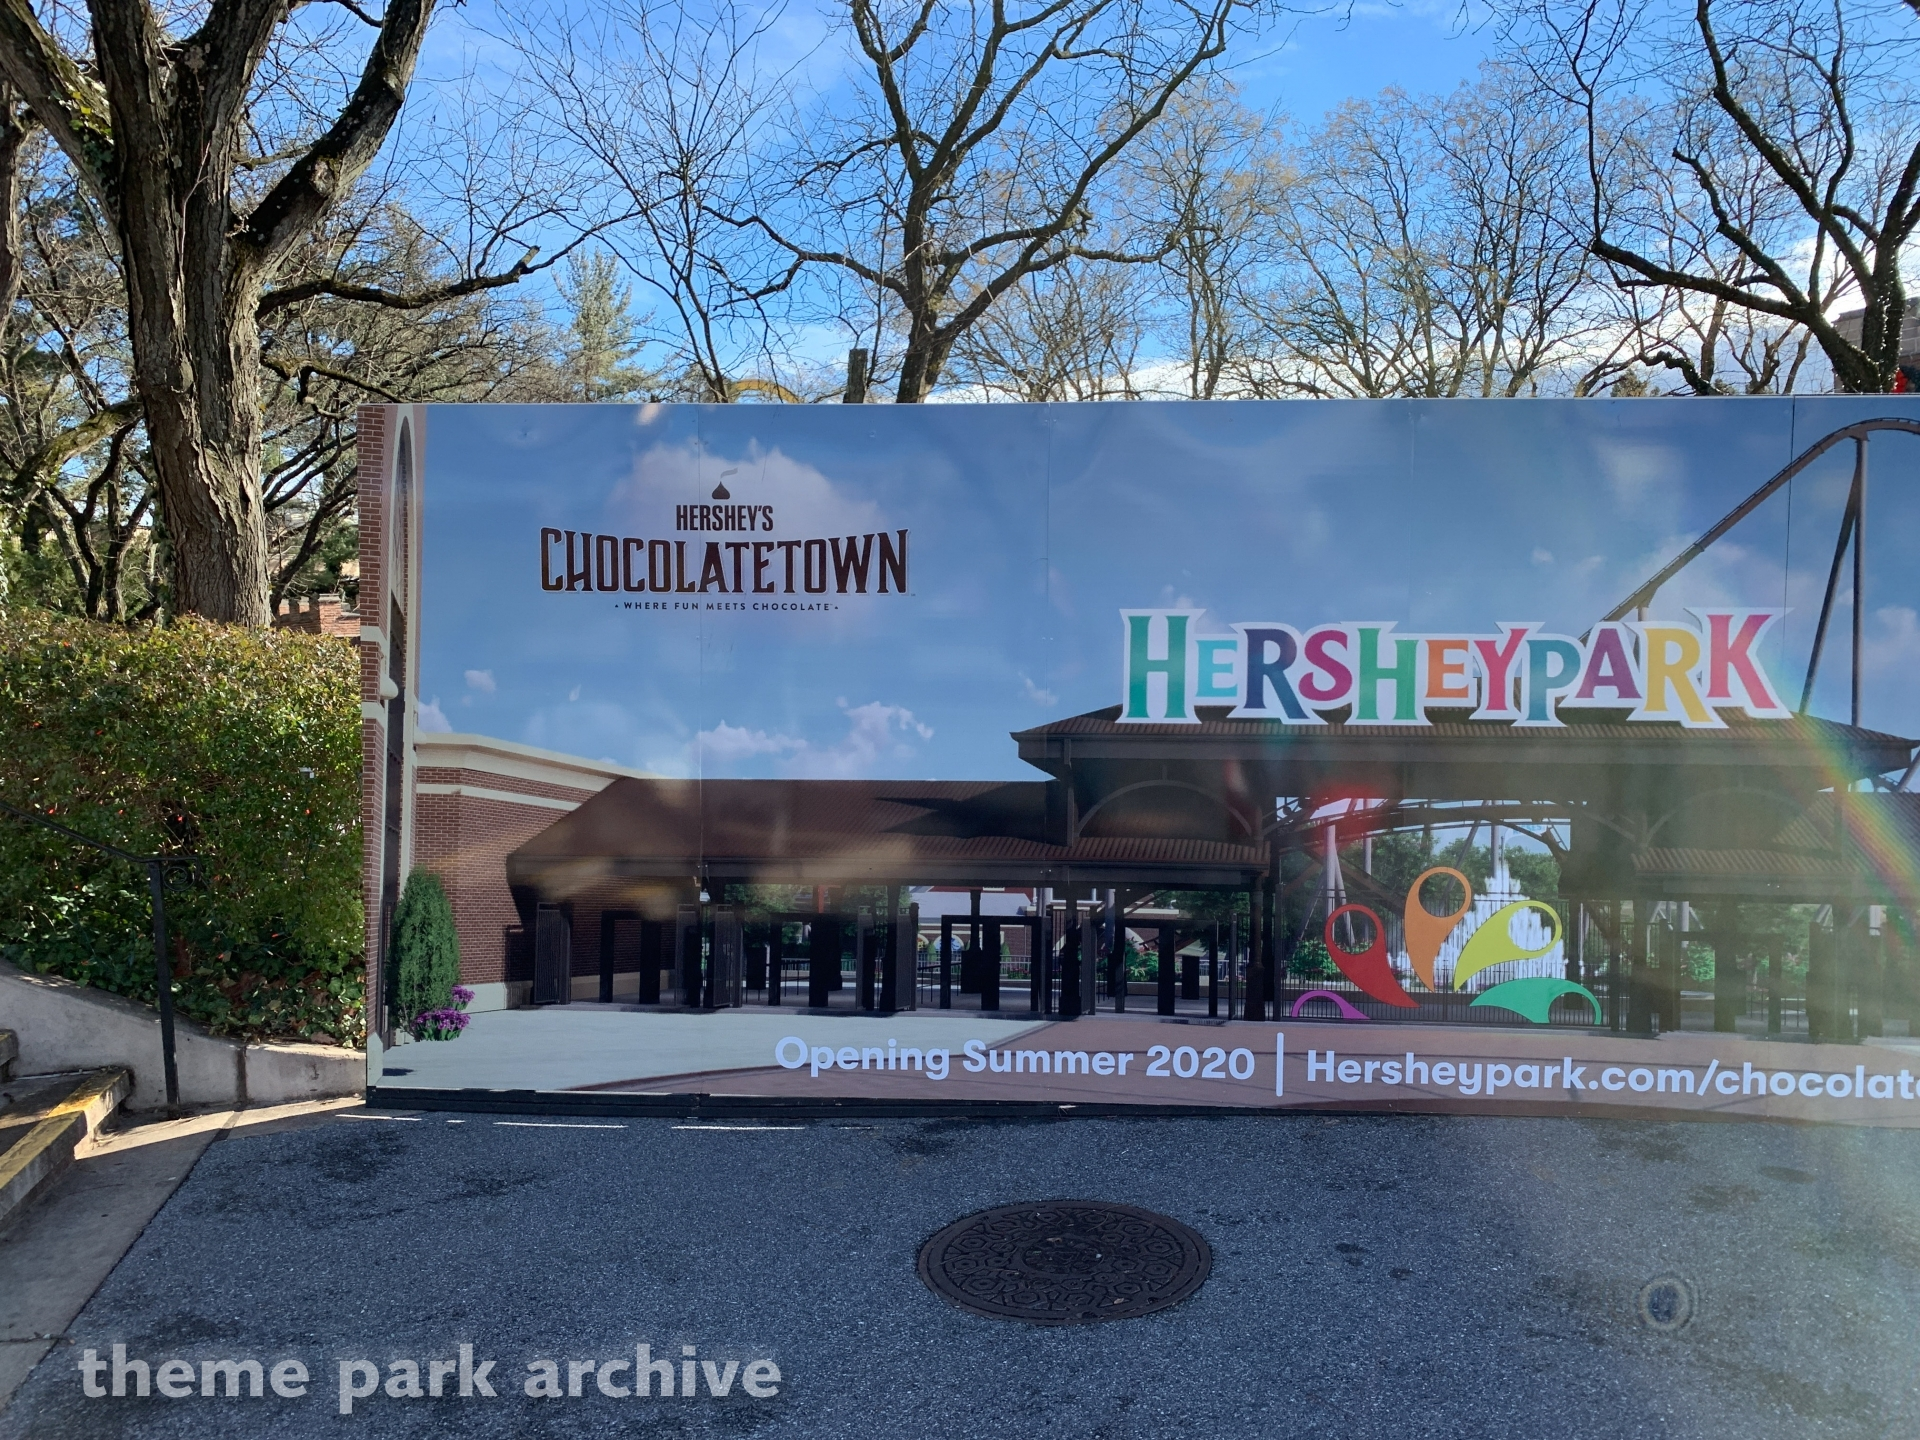 Chocolatetown at Hersheypark